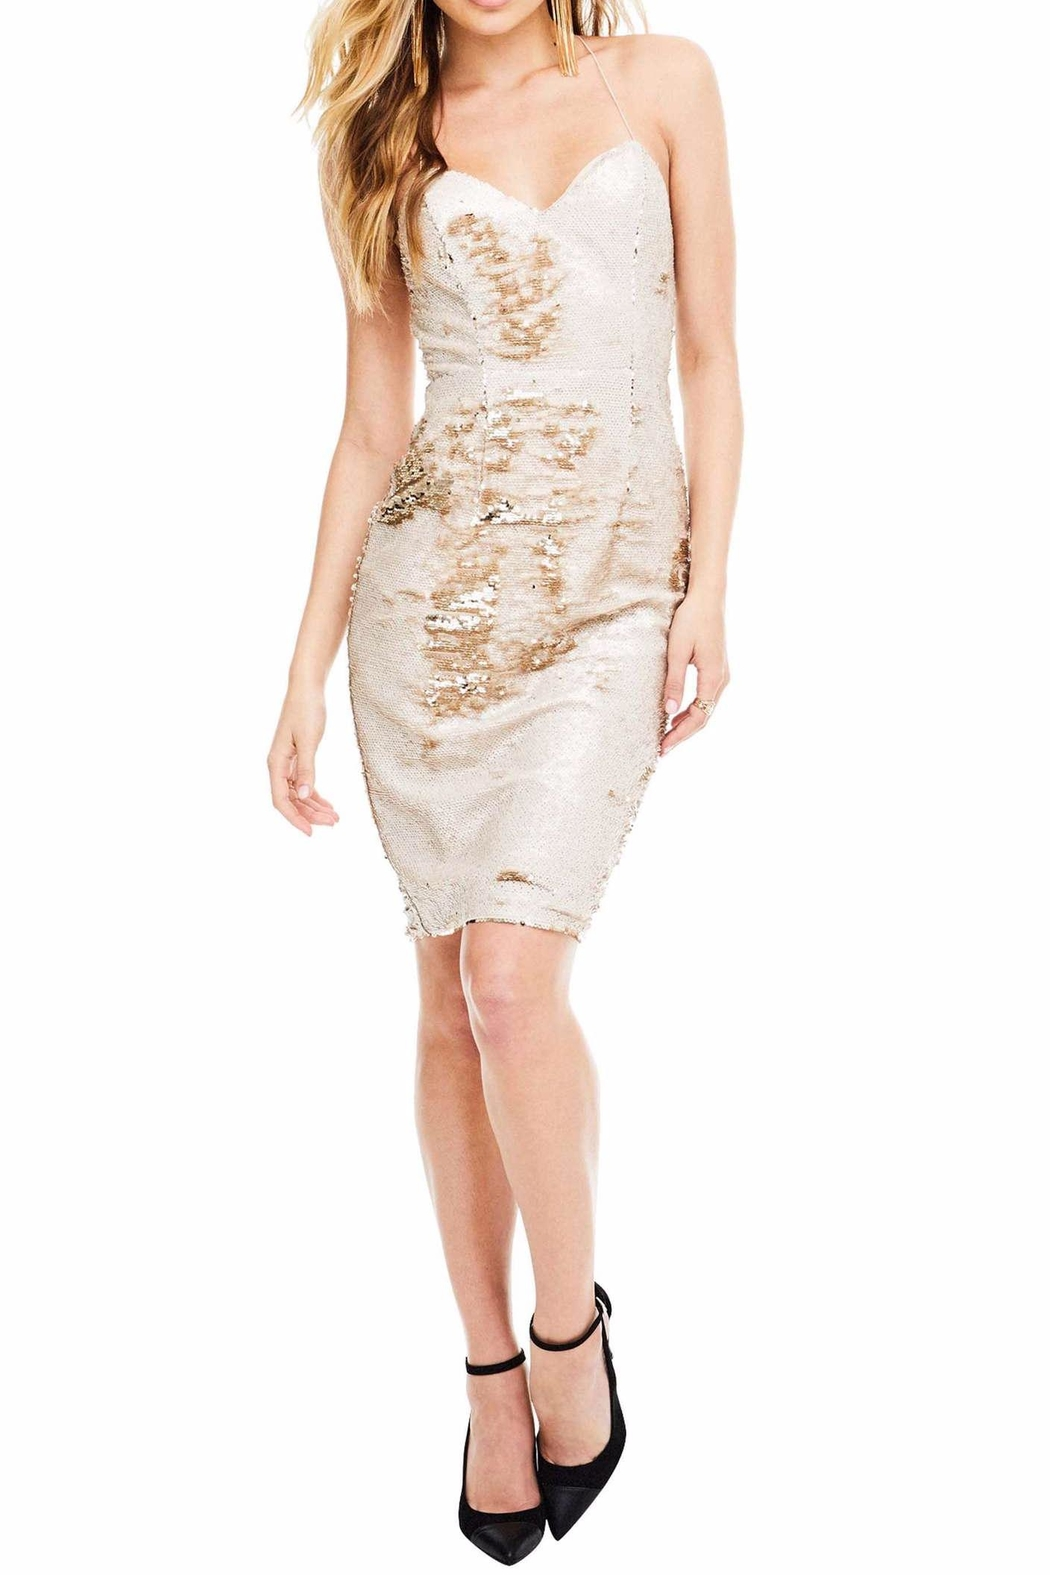 ASTR Francesca Sequin Dress - Front Cropped Image